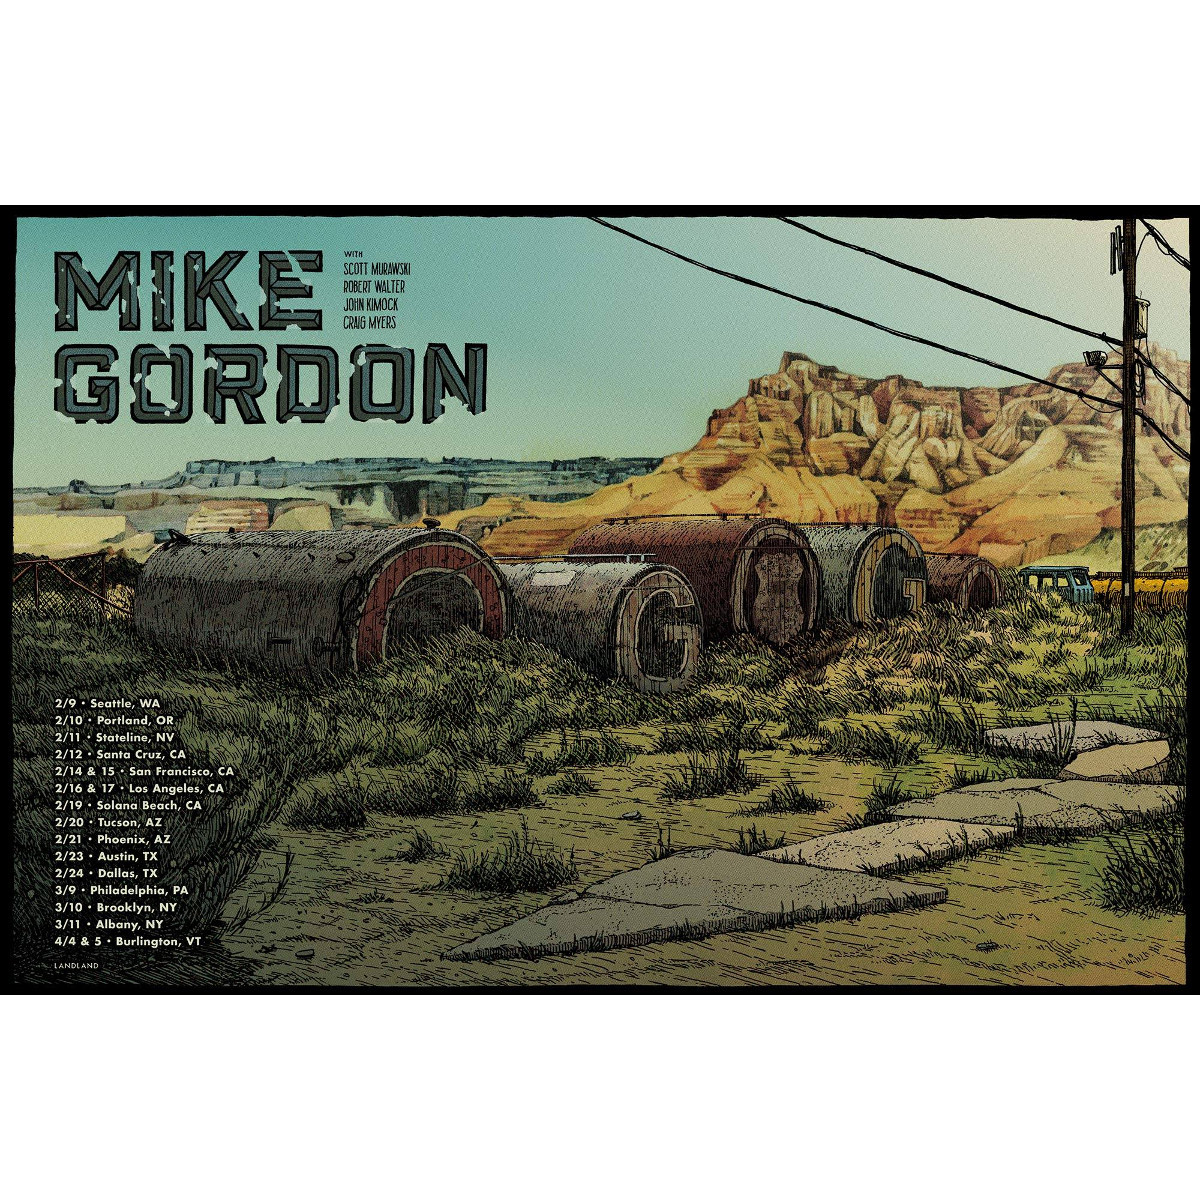 Mike Gordon Winter 2018 Tour Poster